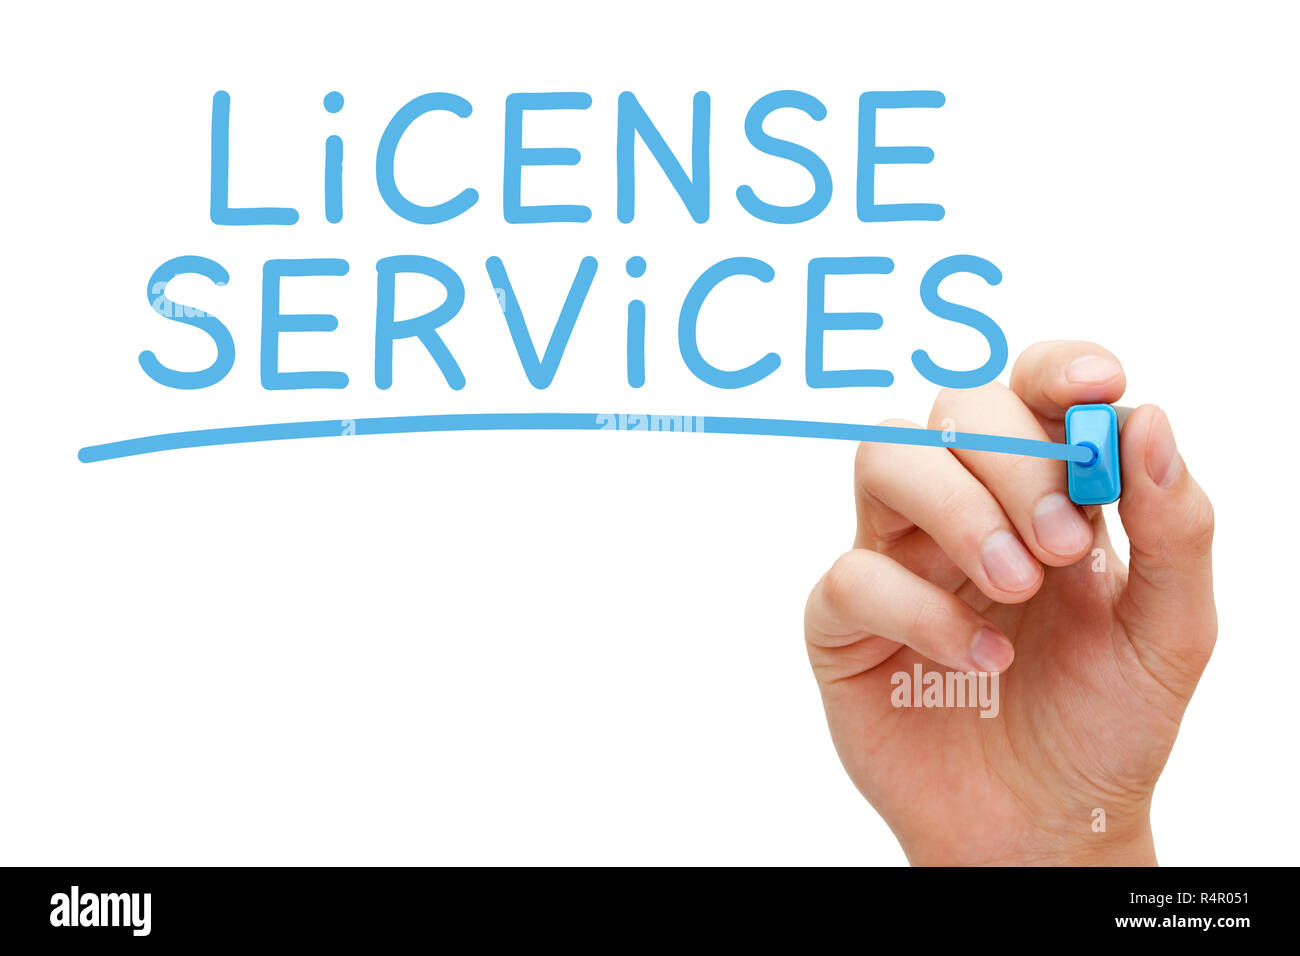 License Services Blue Marker Stock Photo